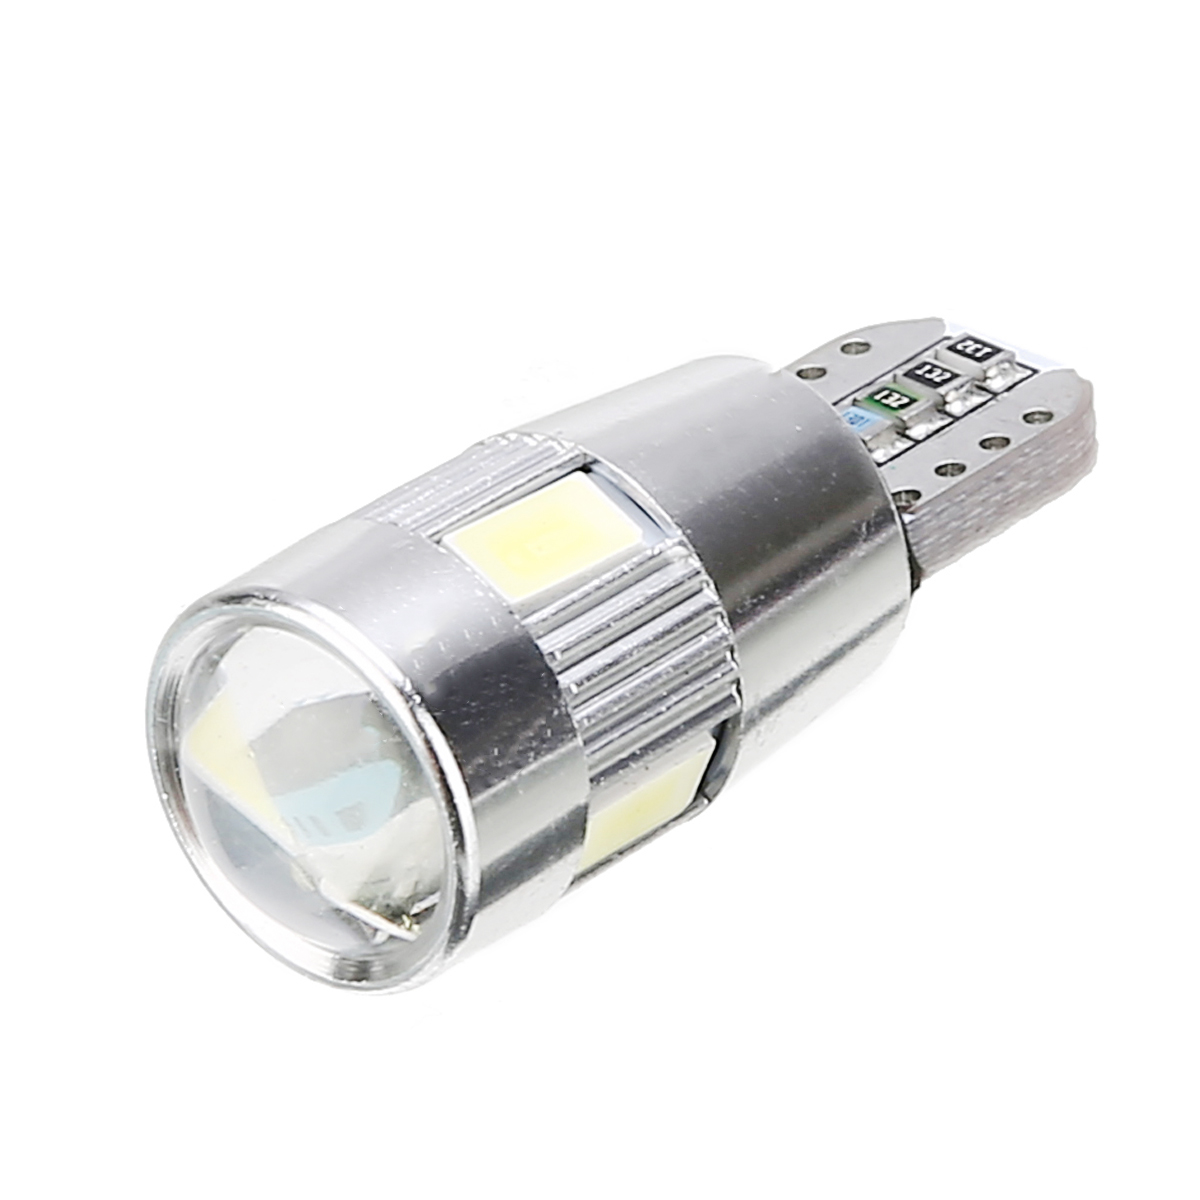 10pcs T10 W5W LED Car Wedge Side Park Tail Light Bulb White Bright Lens 6000K